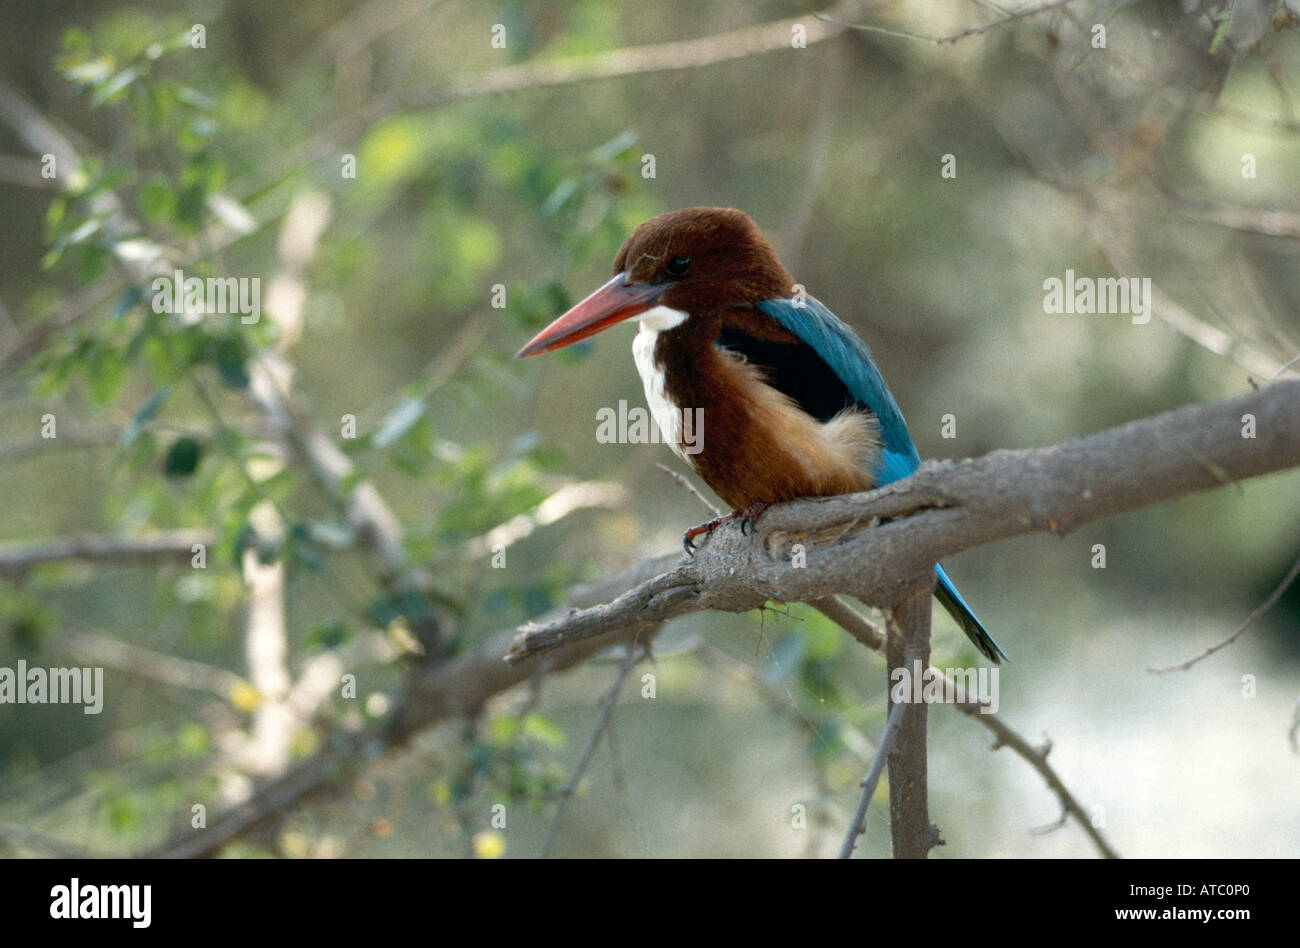 A kingfisher perched on a branch in the Bharatpur Keoladeo Ghana Bird Sanctuary a World Heritage site which was set up in 1956 by Maharaja Brajendra Singh - Stock Image